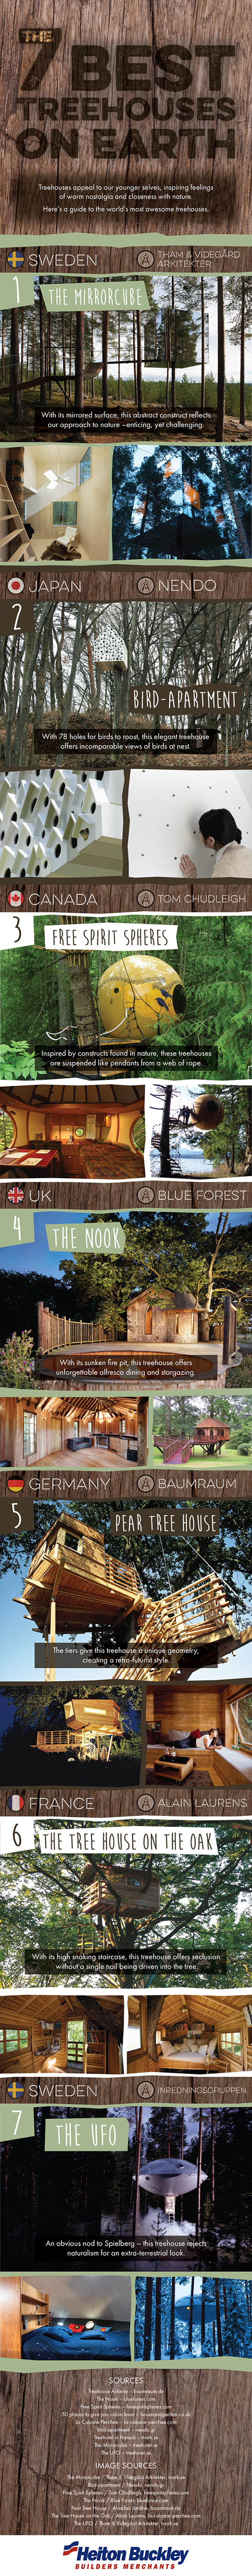 seven-best-treehouses-on-earth-2